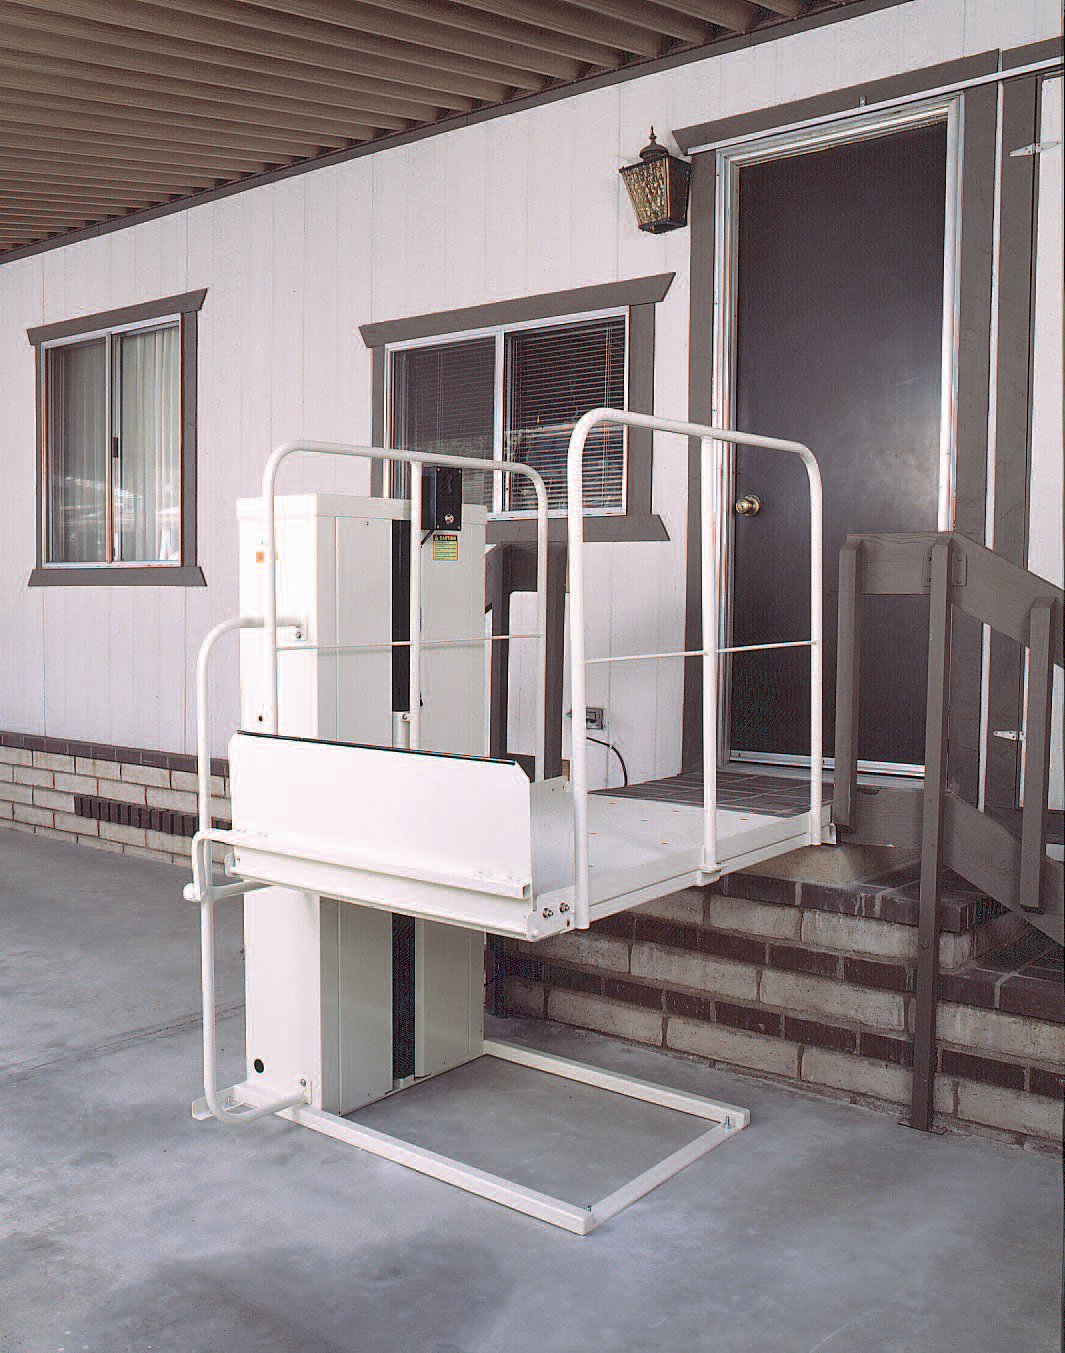 rancho santa margarita stair porch lift are mobile home friendly